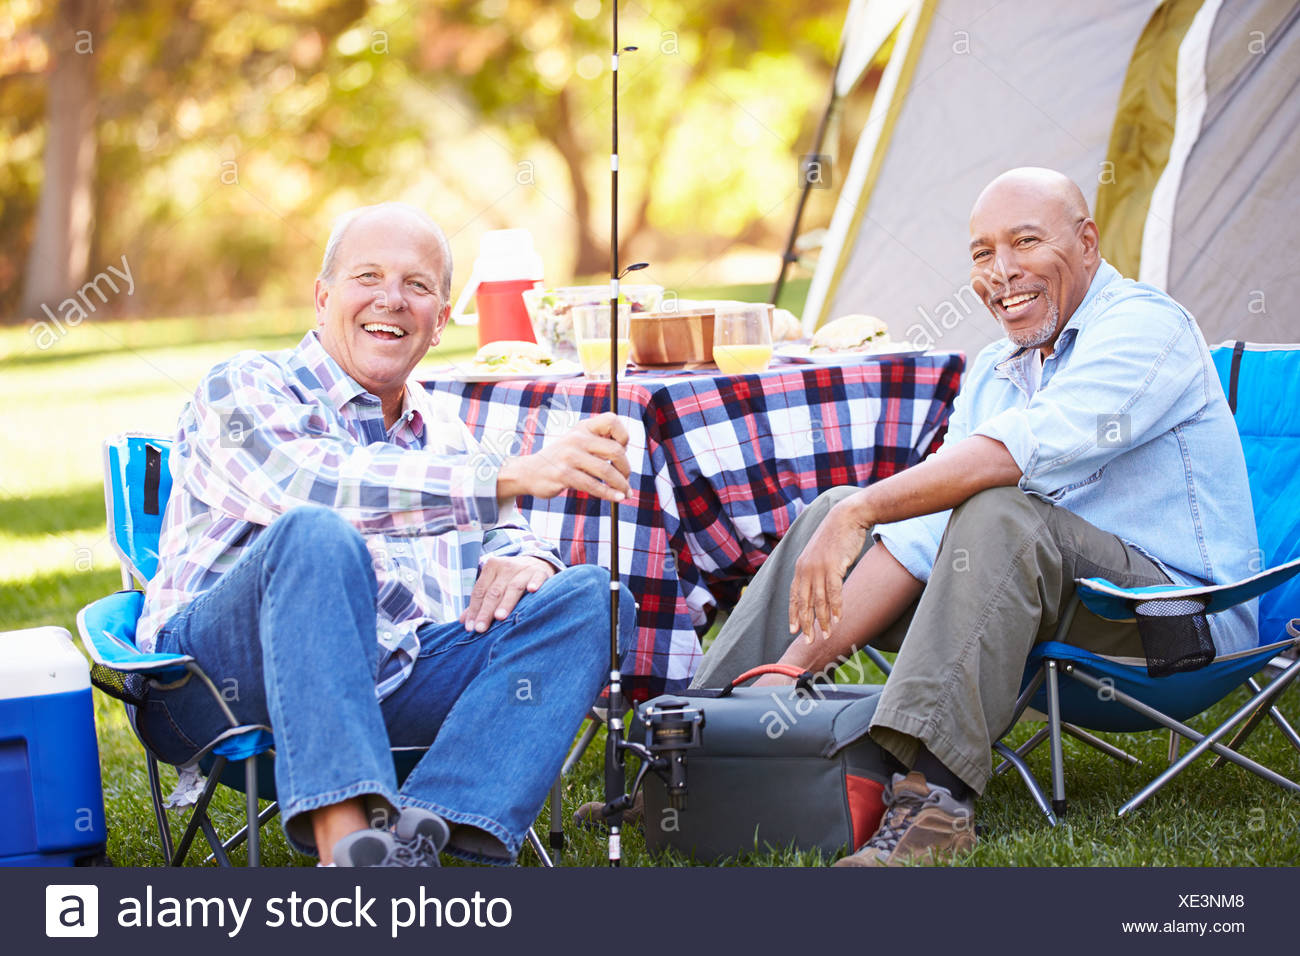 Two Senior Men On Camping Holiday With Fishing Rod - Stock Image